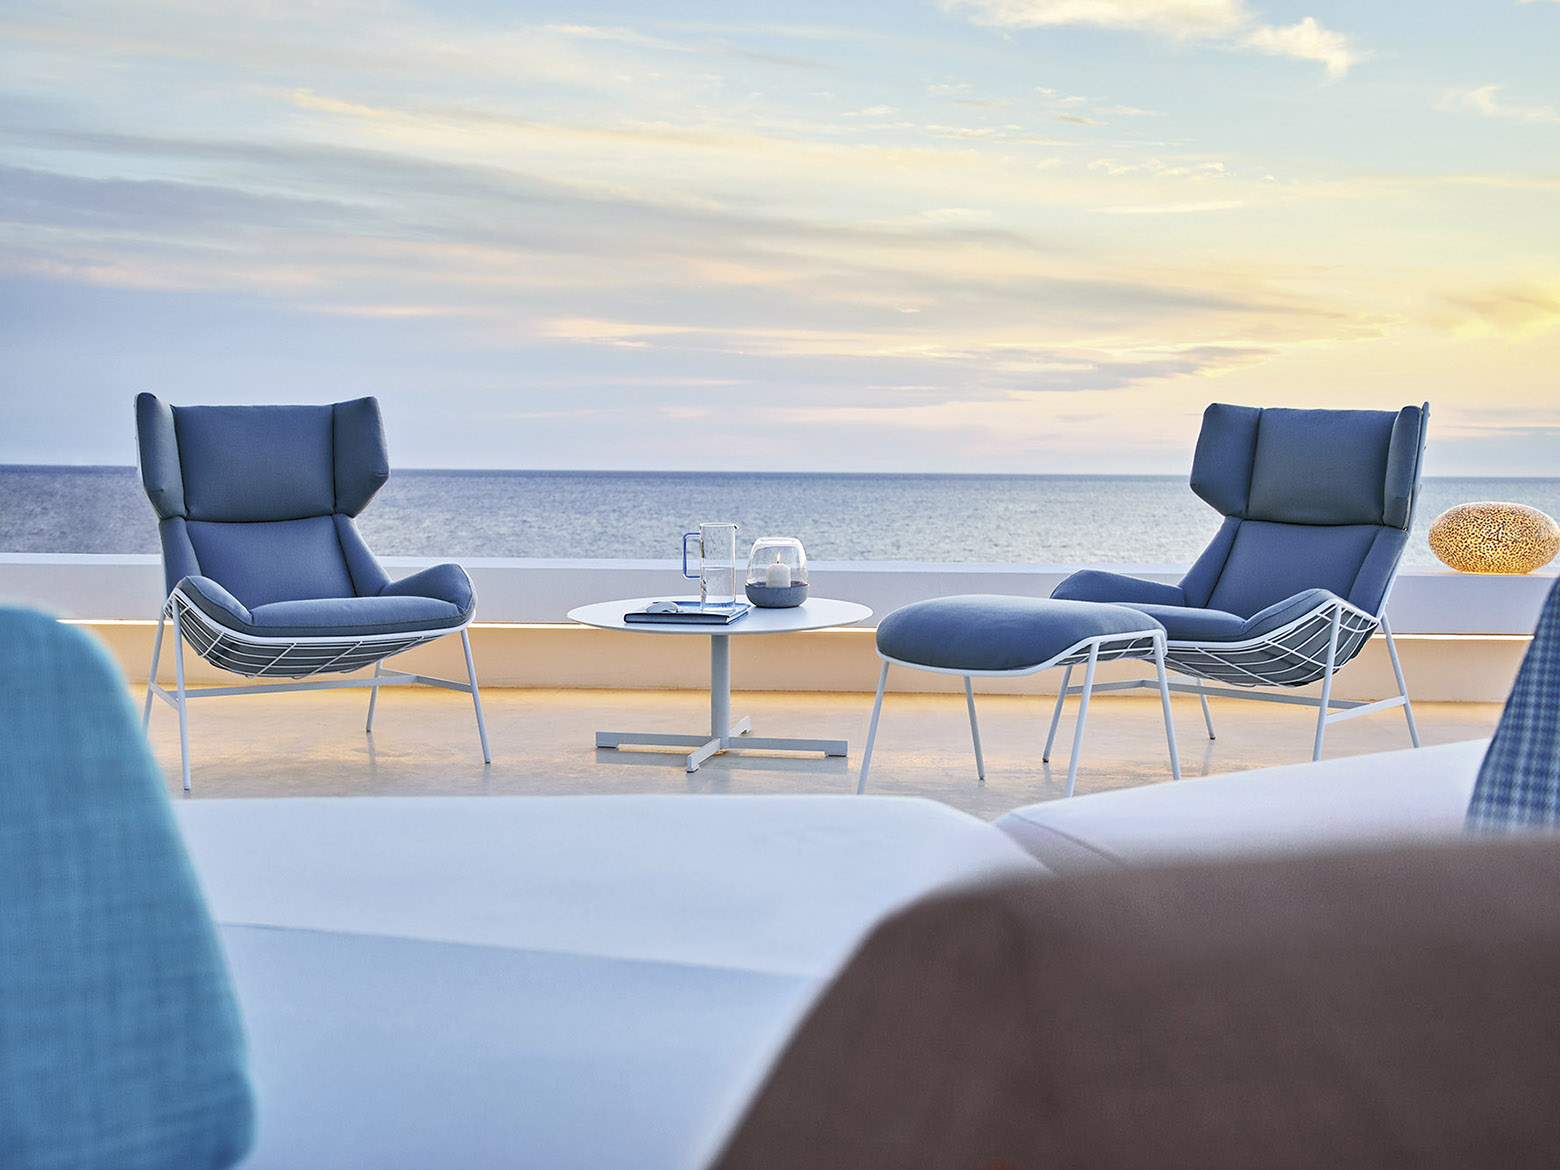 Charming Outdoor Furniture And Contract Furniture Design Made In Italy. Italian Furniture  Design, Modern Furniture Online